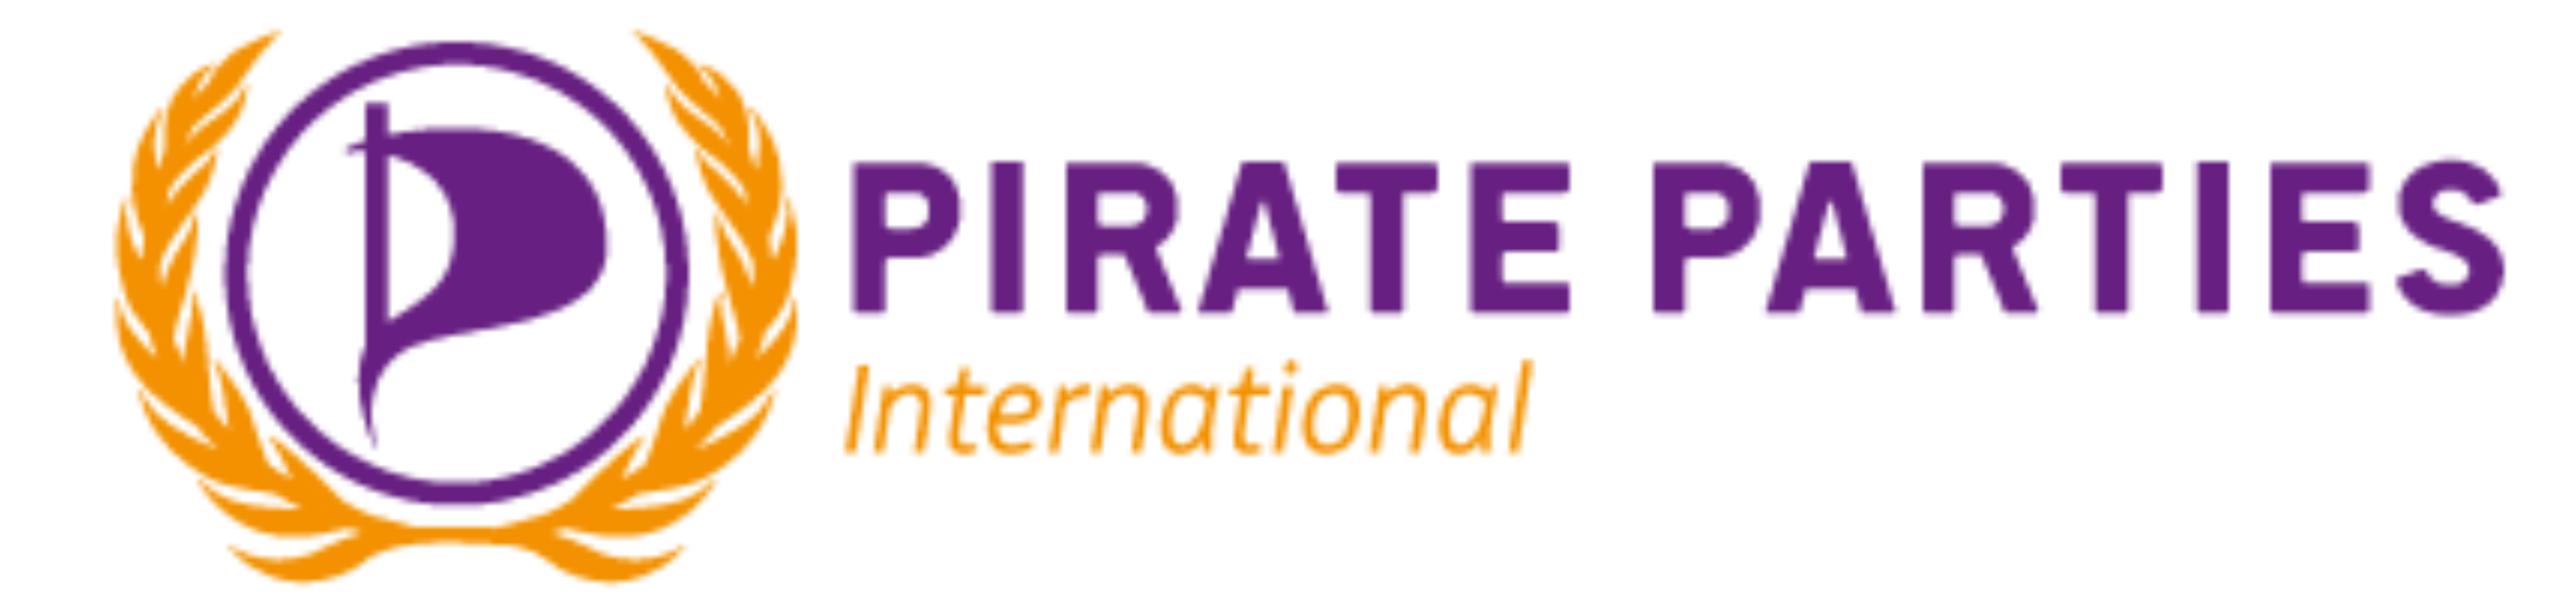 PPI internal | Pirate Parties International